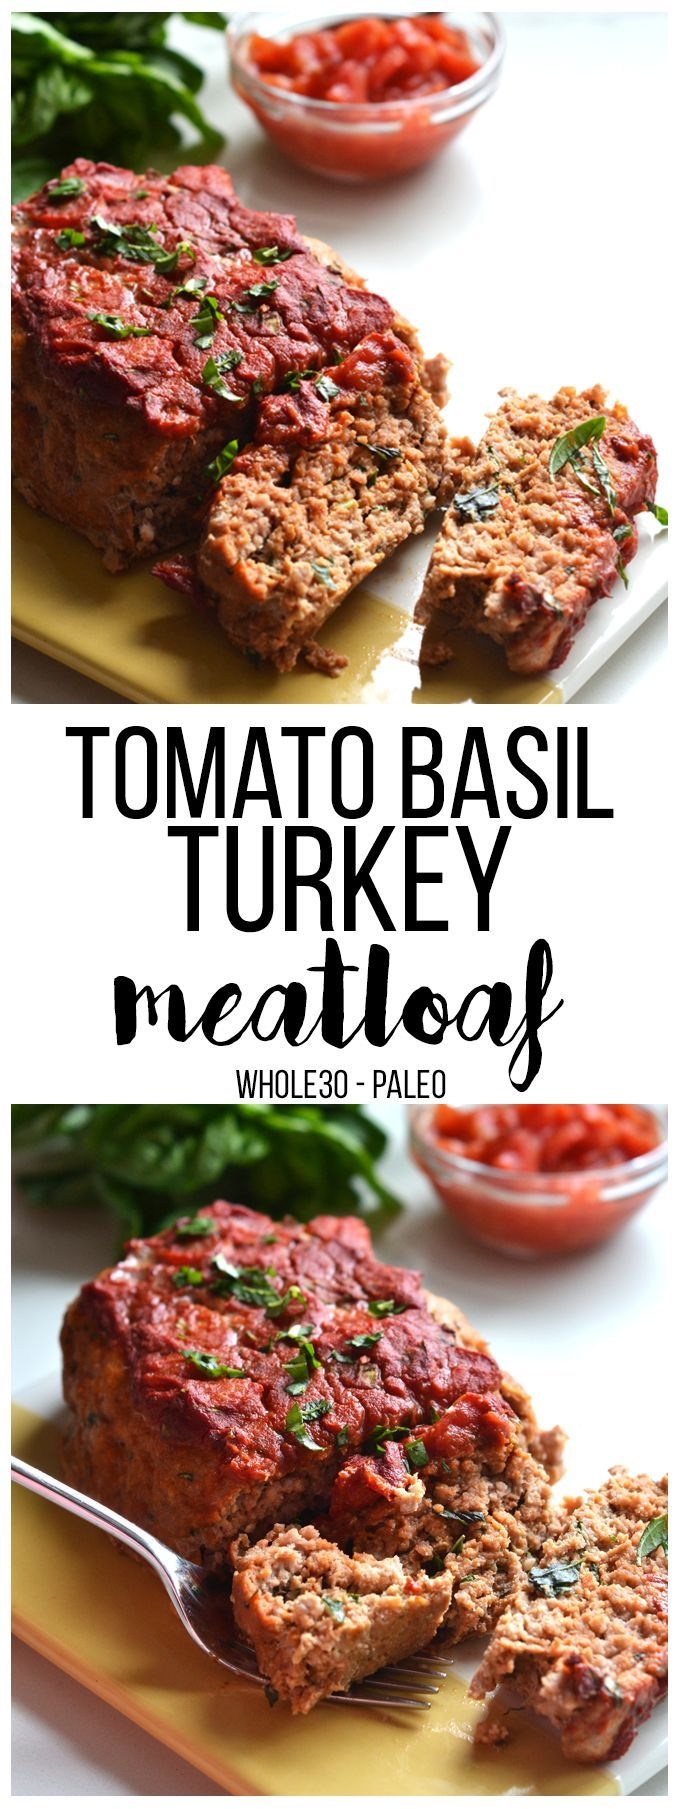 This Tomato Basil Turkey Meatloaf recipe is a perfect whole30 & paleo option that is super easy to throw together for a weeknight dinner!